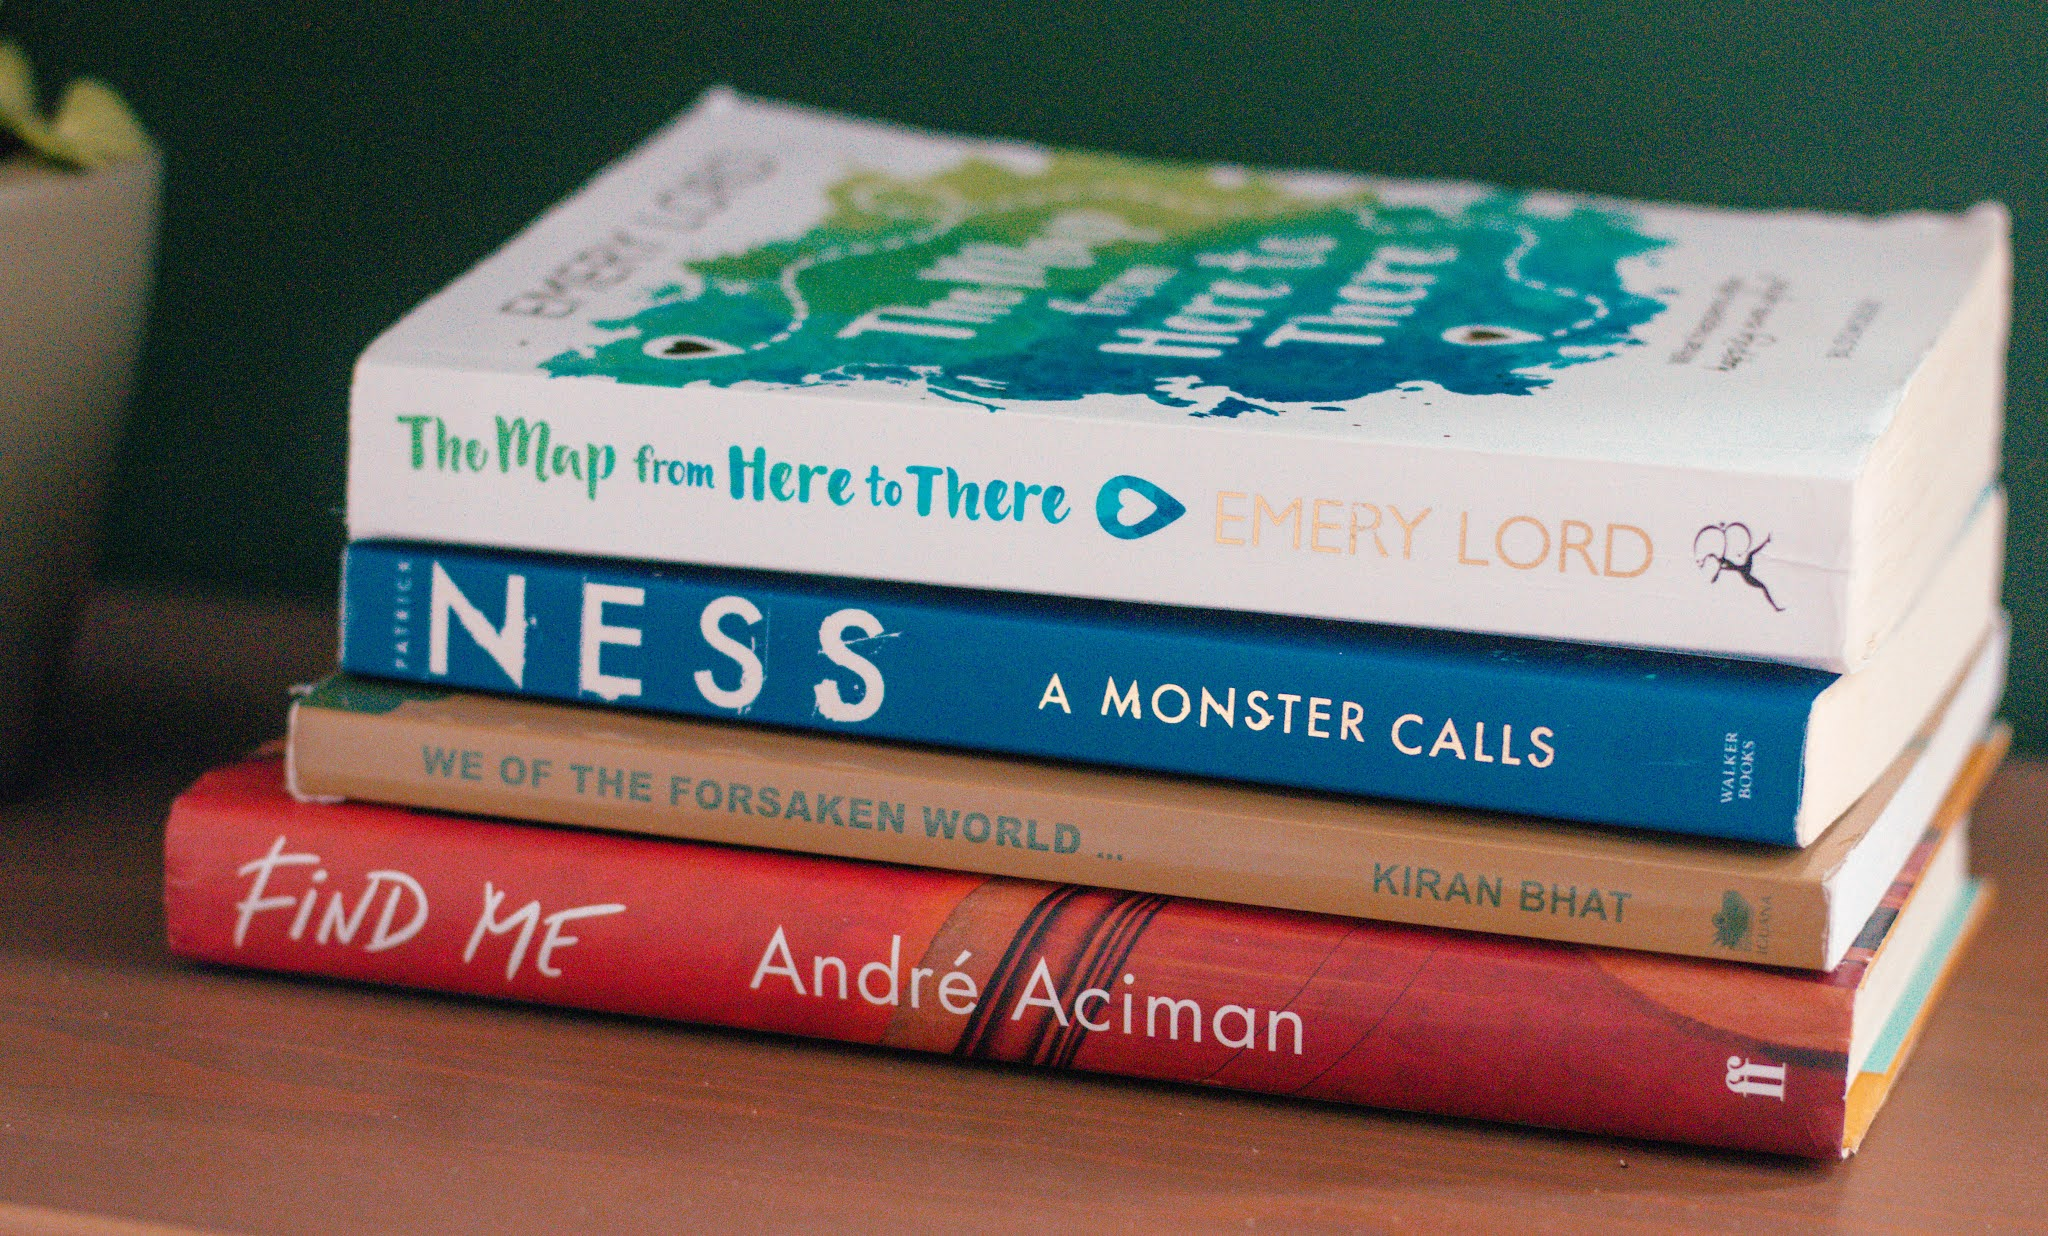 What I've been reading, book pile - ya fiction, a monster calls and more book reviews - summer 2020